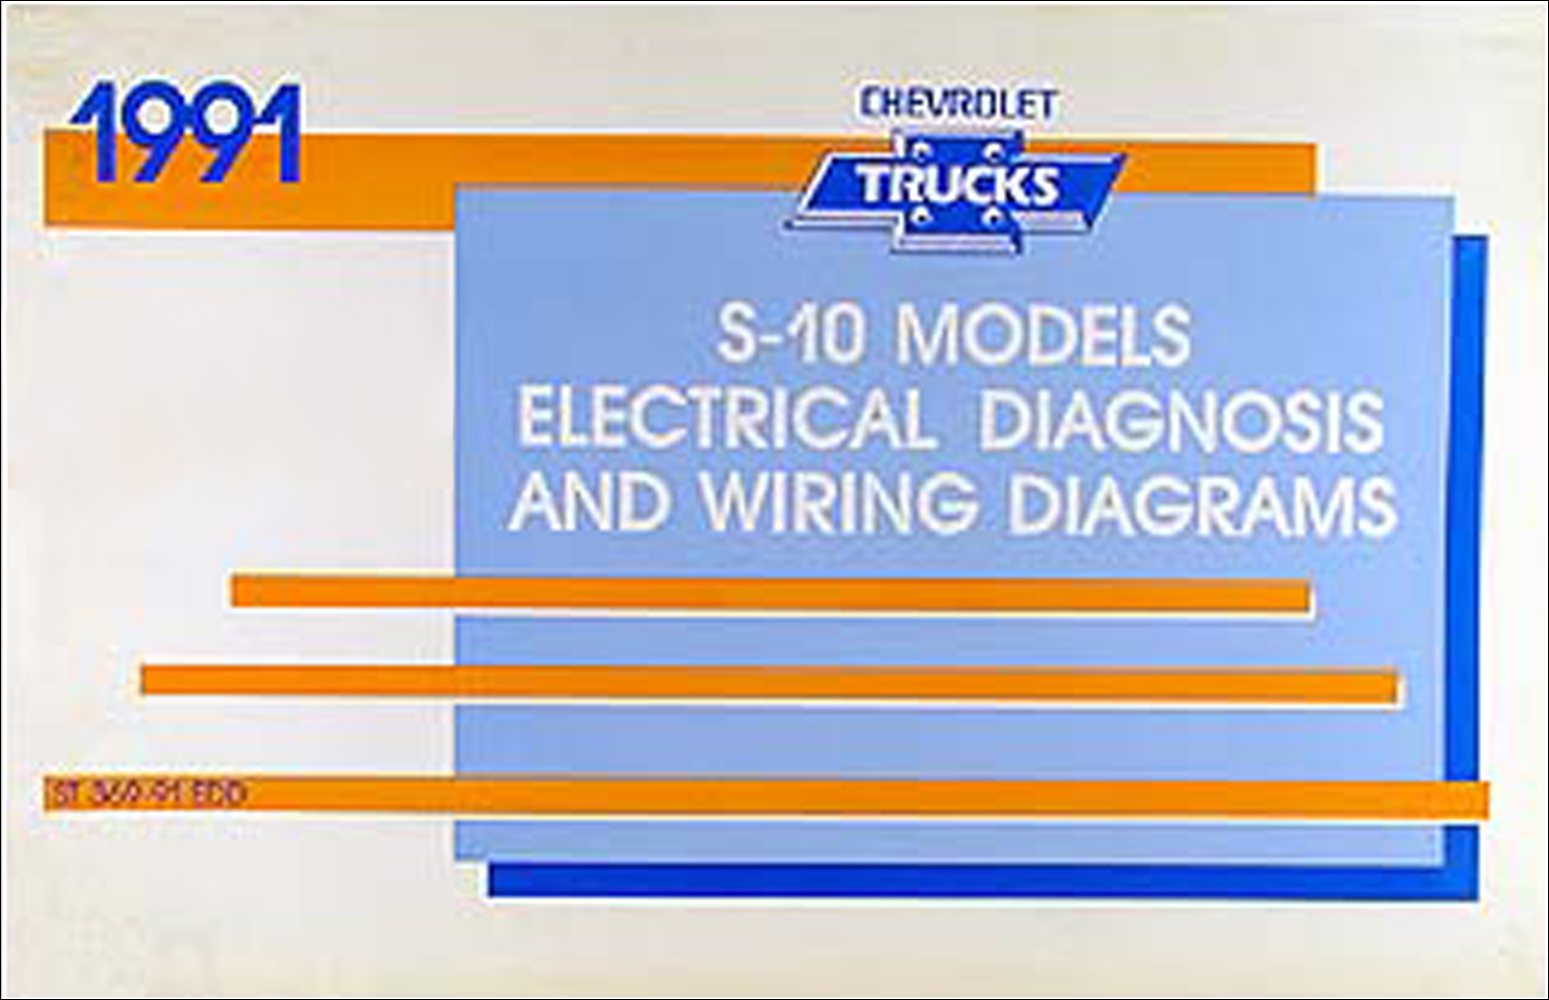 1991 Chevy S10 Wiring Diagram Detailed Schematics 1992 Tacoma S 10 Pickup Blazer Manual Original